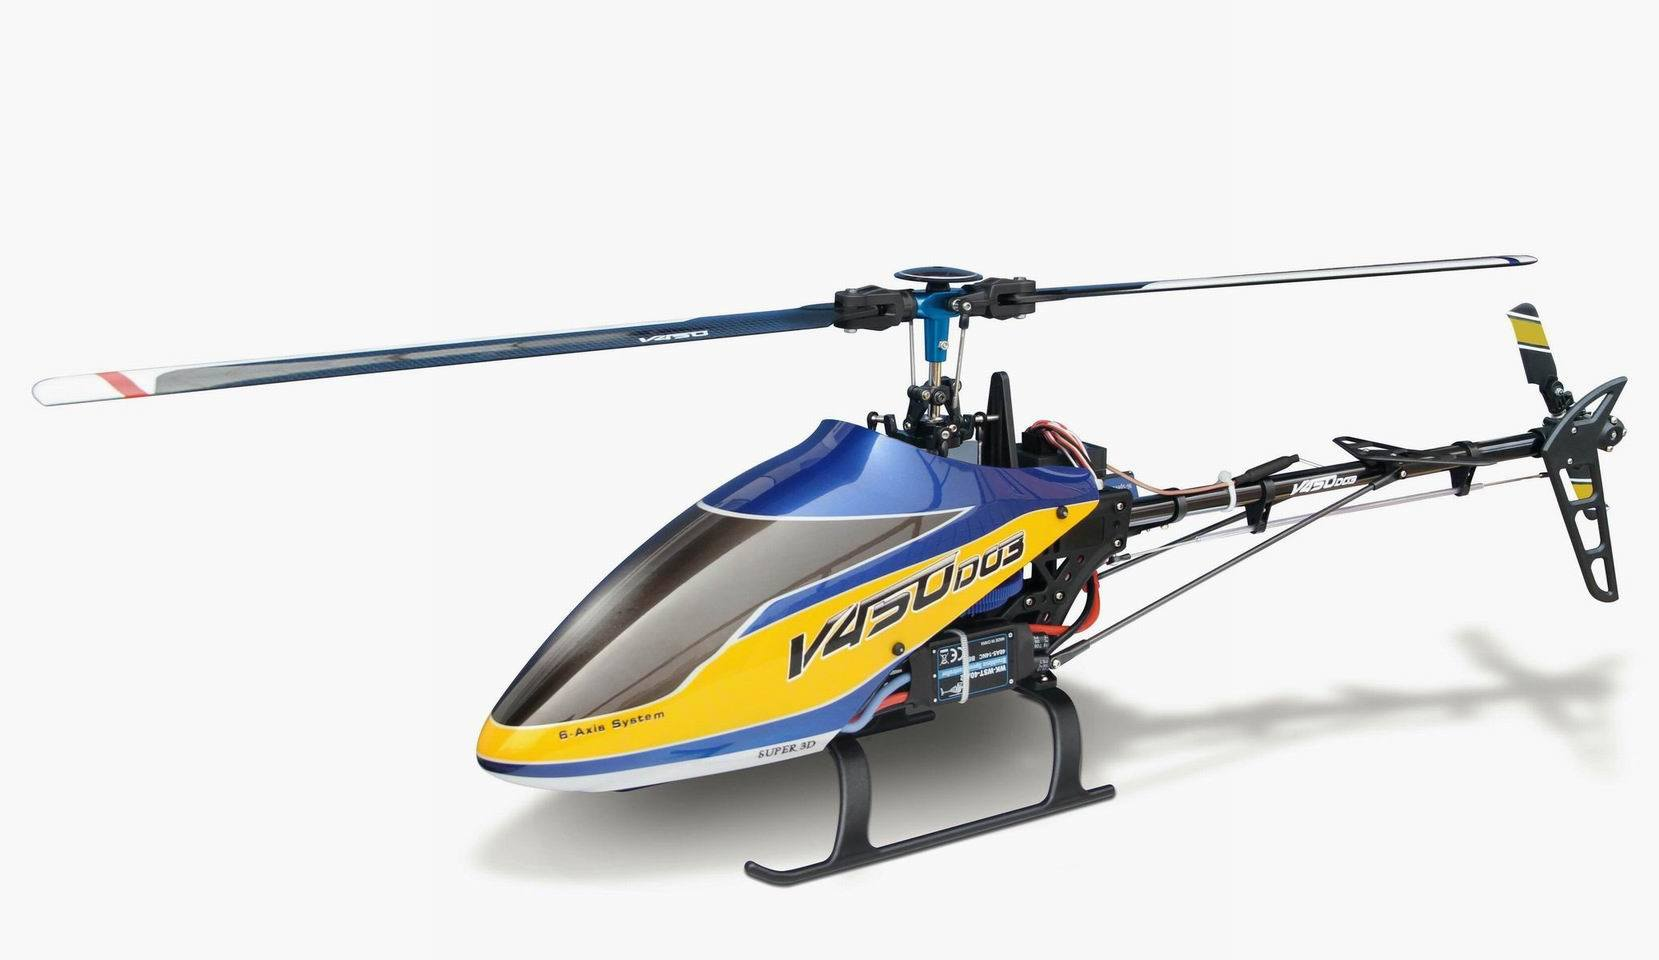 remote control helicopter toys r us with China Big Helicopter V450d03 on Wholesale Allen Screwdriver besides Rc helicopters DFLY detail also M230 chain gun as well Hbx 2098b 1 24 4wd Rc Crawler 4x4 Rc Rock Crawler Mini Electric Offroad Radio Controlled Truck moreover Rc B 29 Crashes Show.